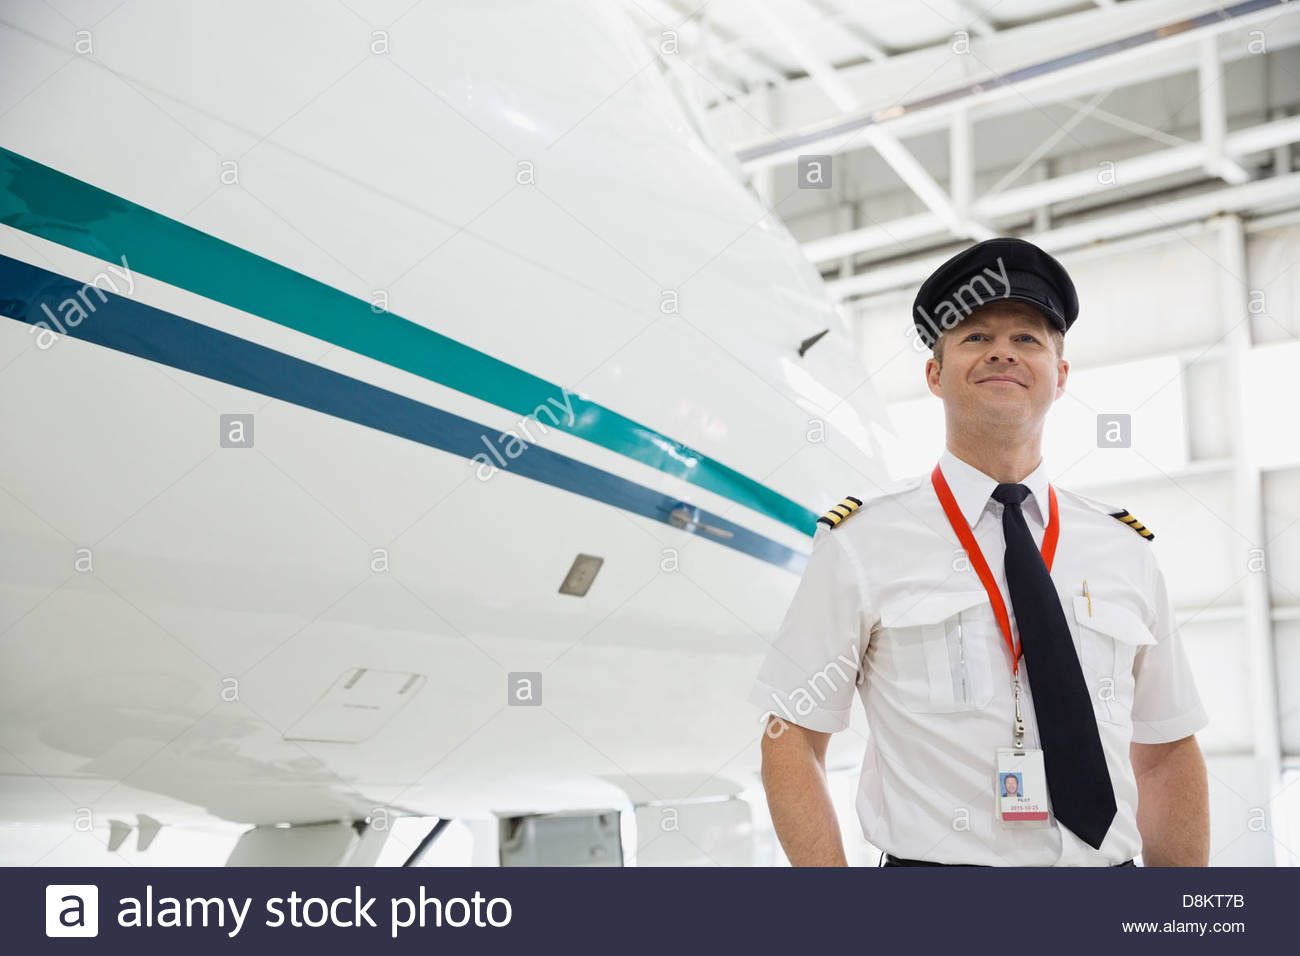 Male pilot standing by airplane in hangar - Stock Image